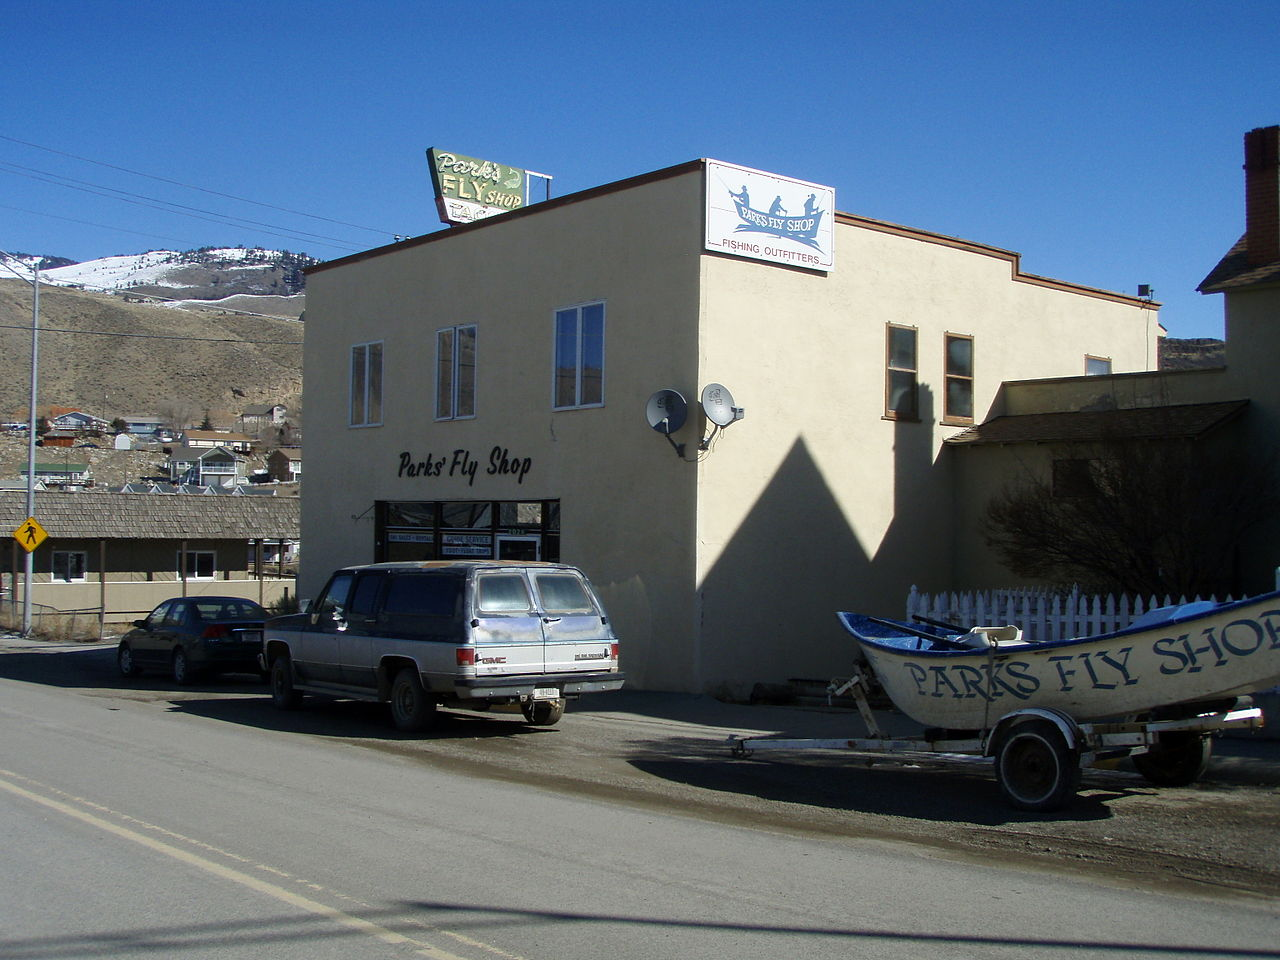 Parks' Fly Shop in Gardiner Montana